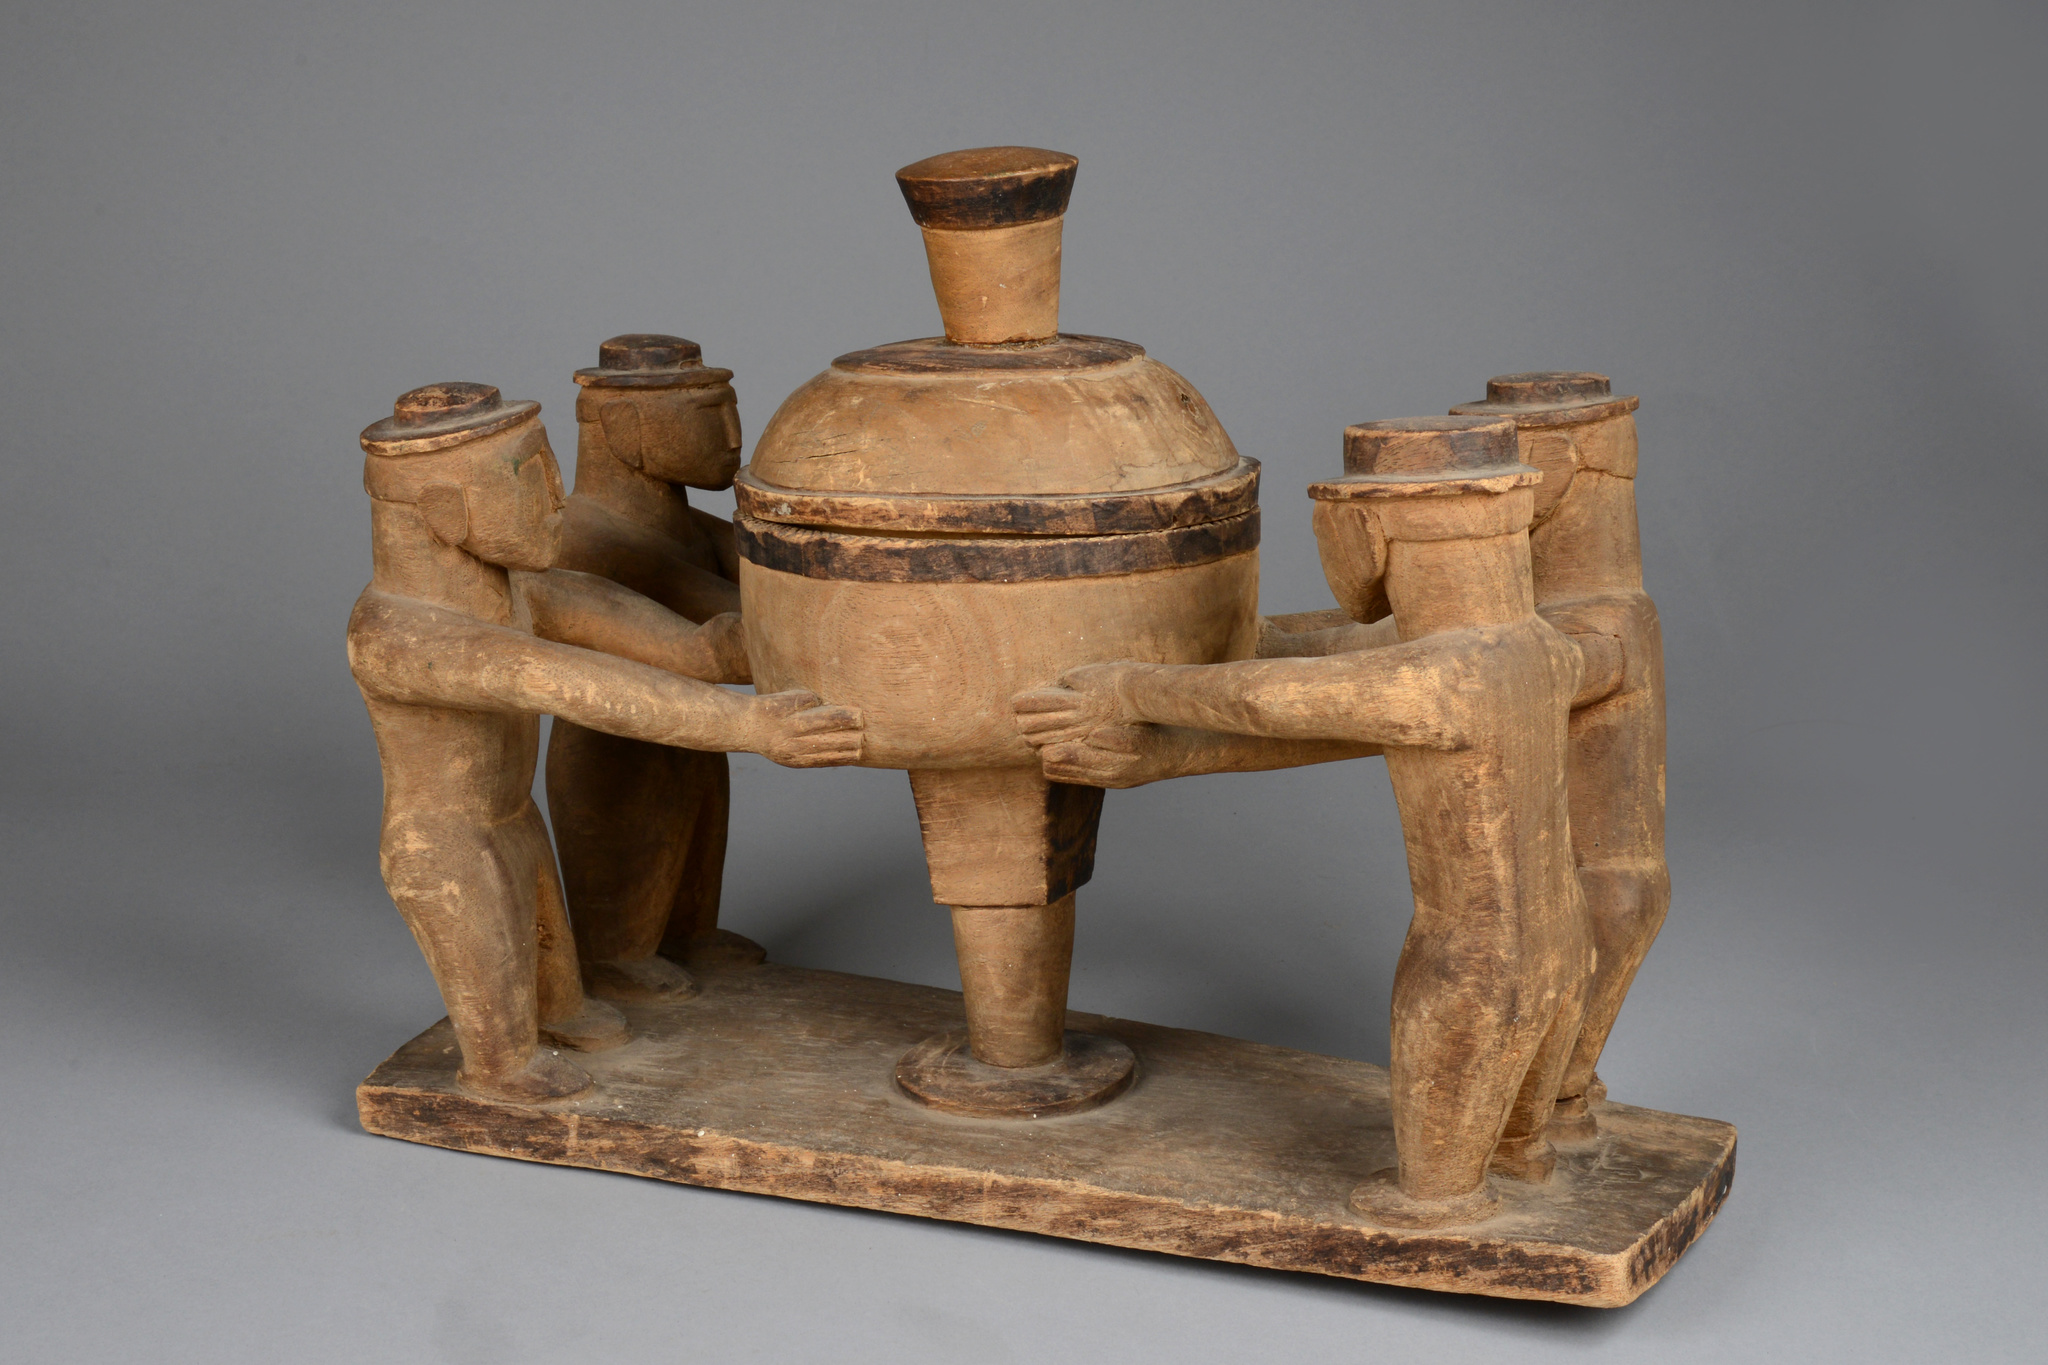 Figural group with sacrificial bowl, 19th/beginning of 20th century